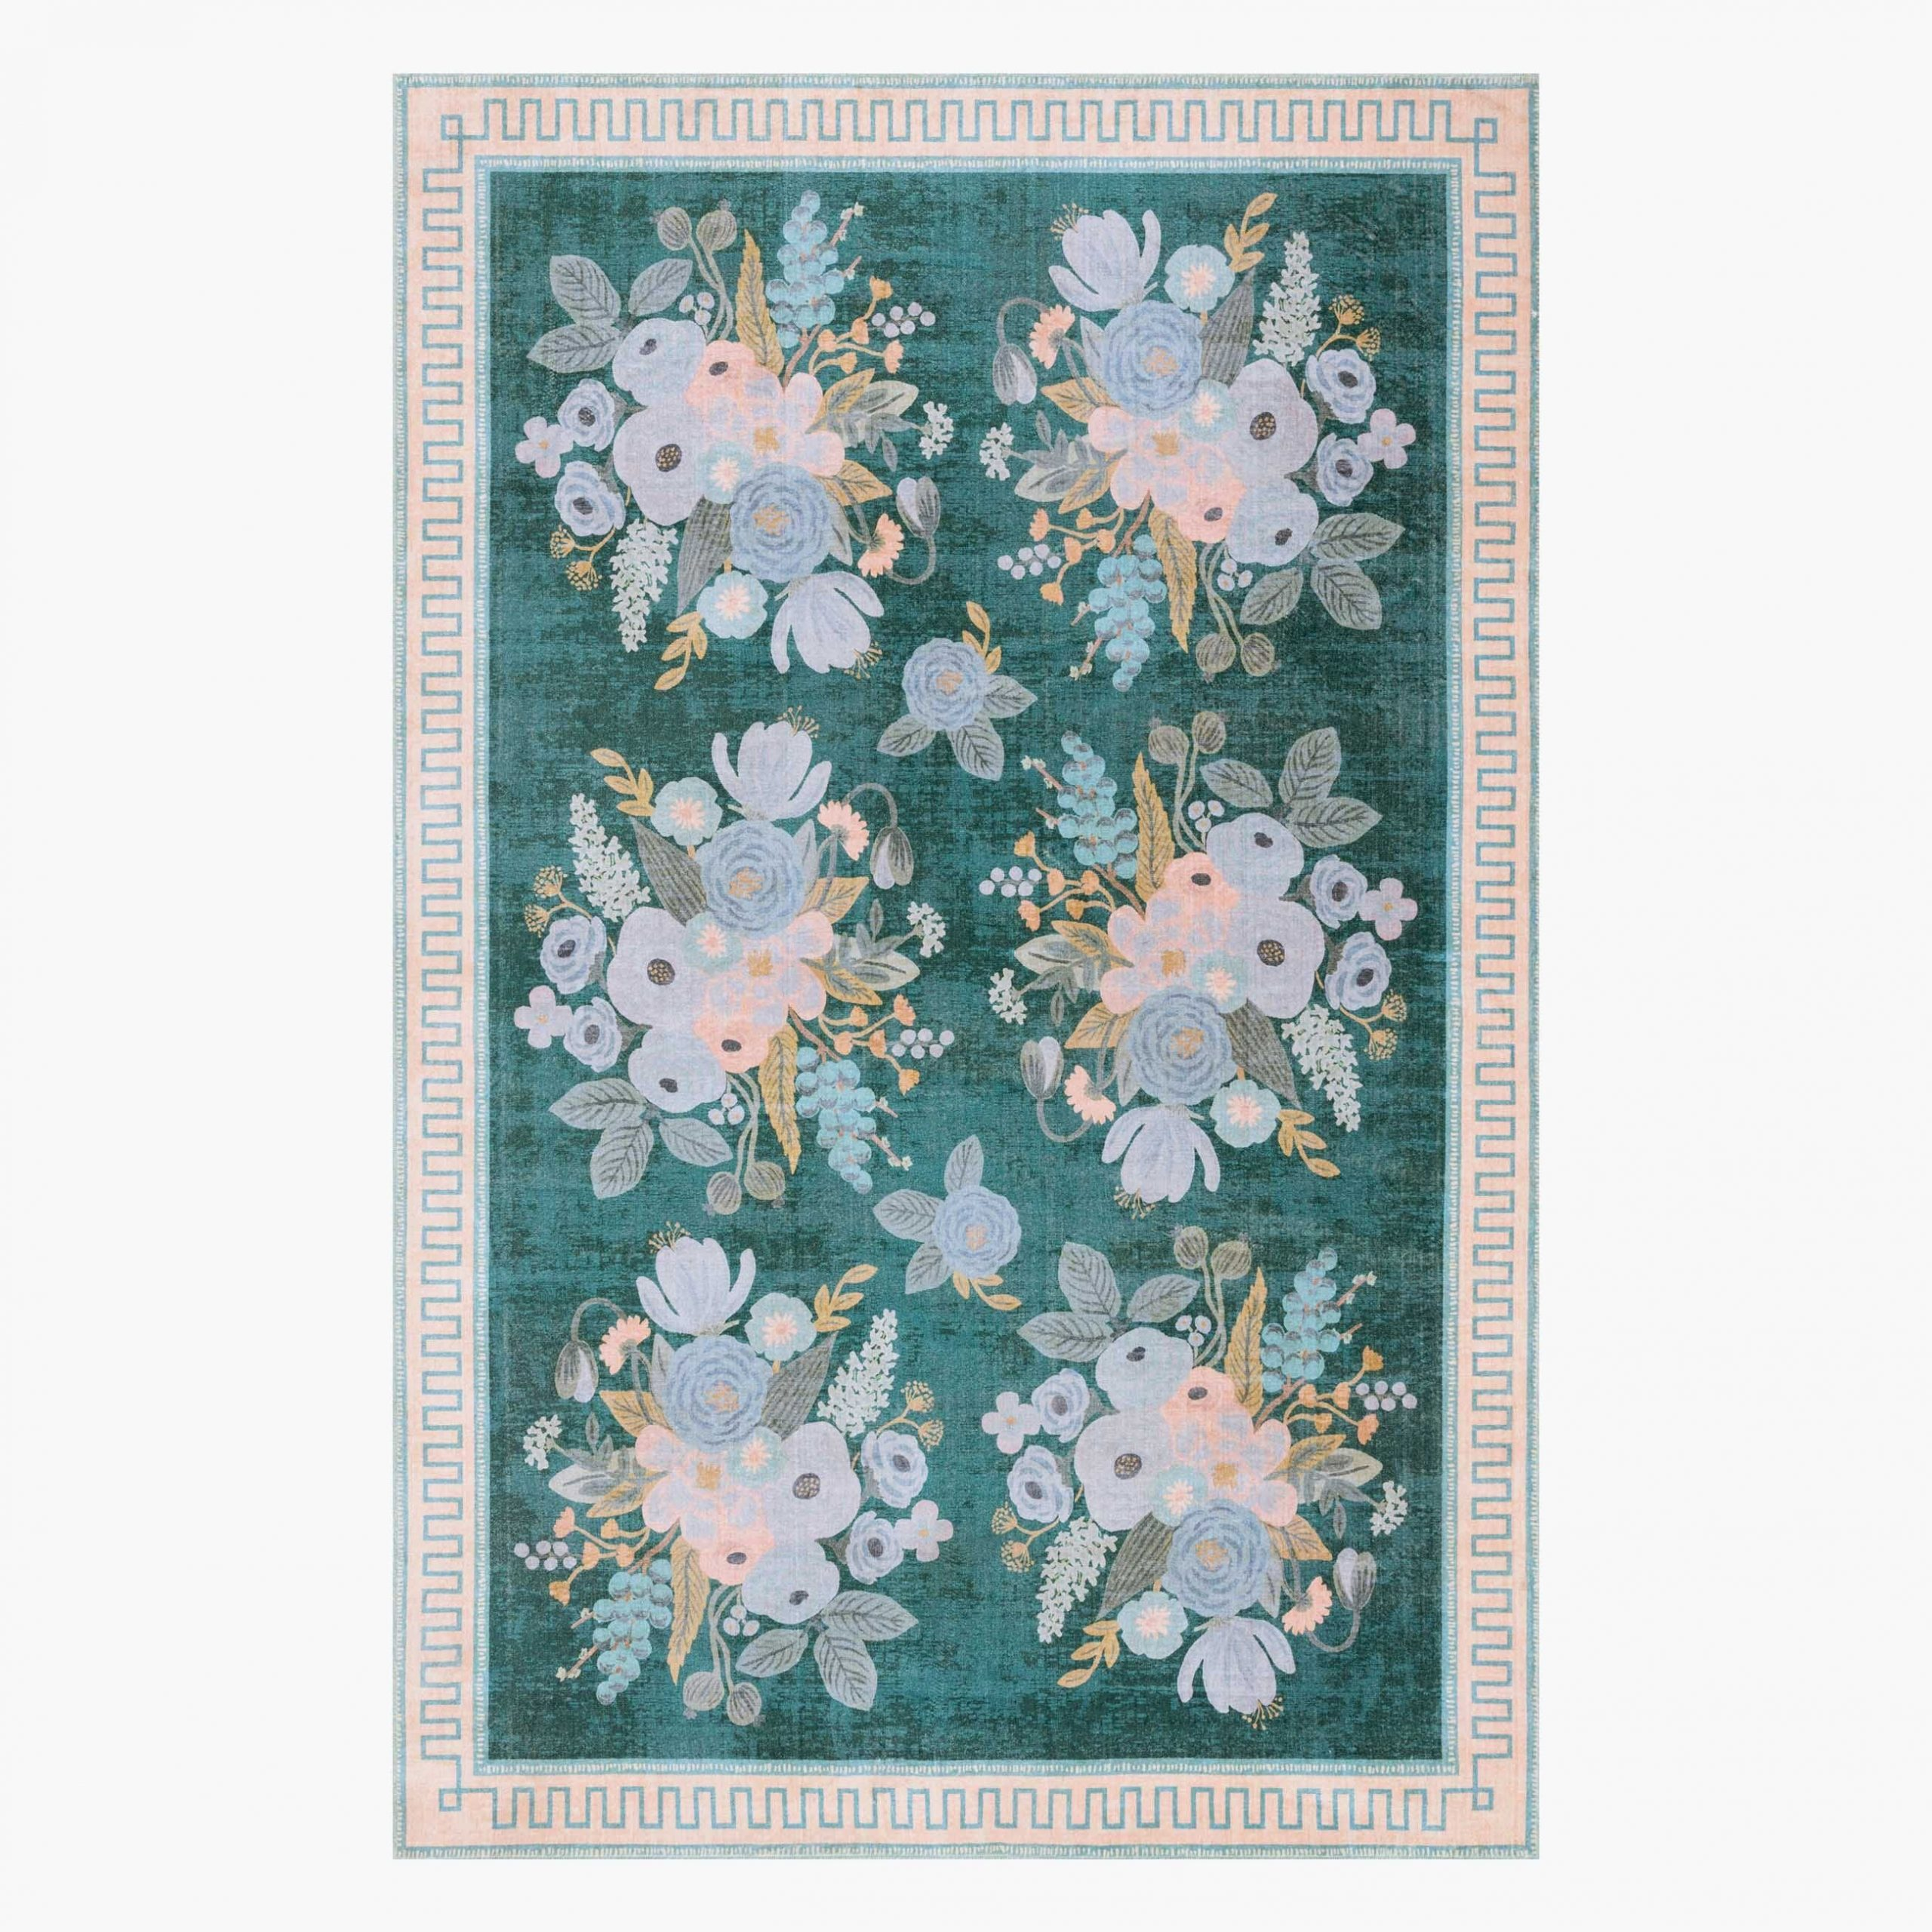 500+ Home Decorum Ideas In 2021 | Home, Dot And Bo, Modern Within Most Current Blended Fabric Clancy Wool And Cotton Wall Hangings With Hanging Accessories Included (View 11 of 20)